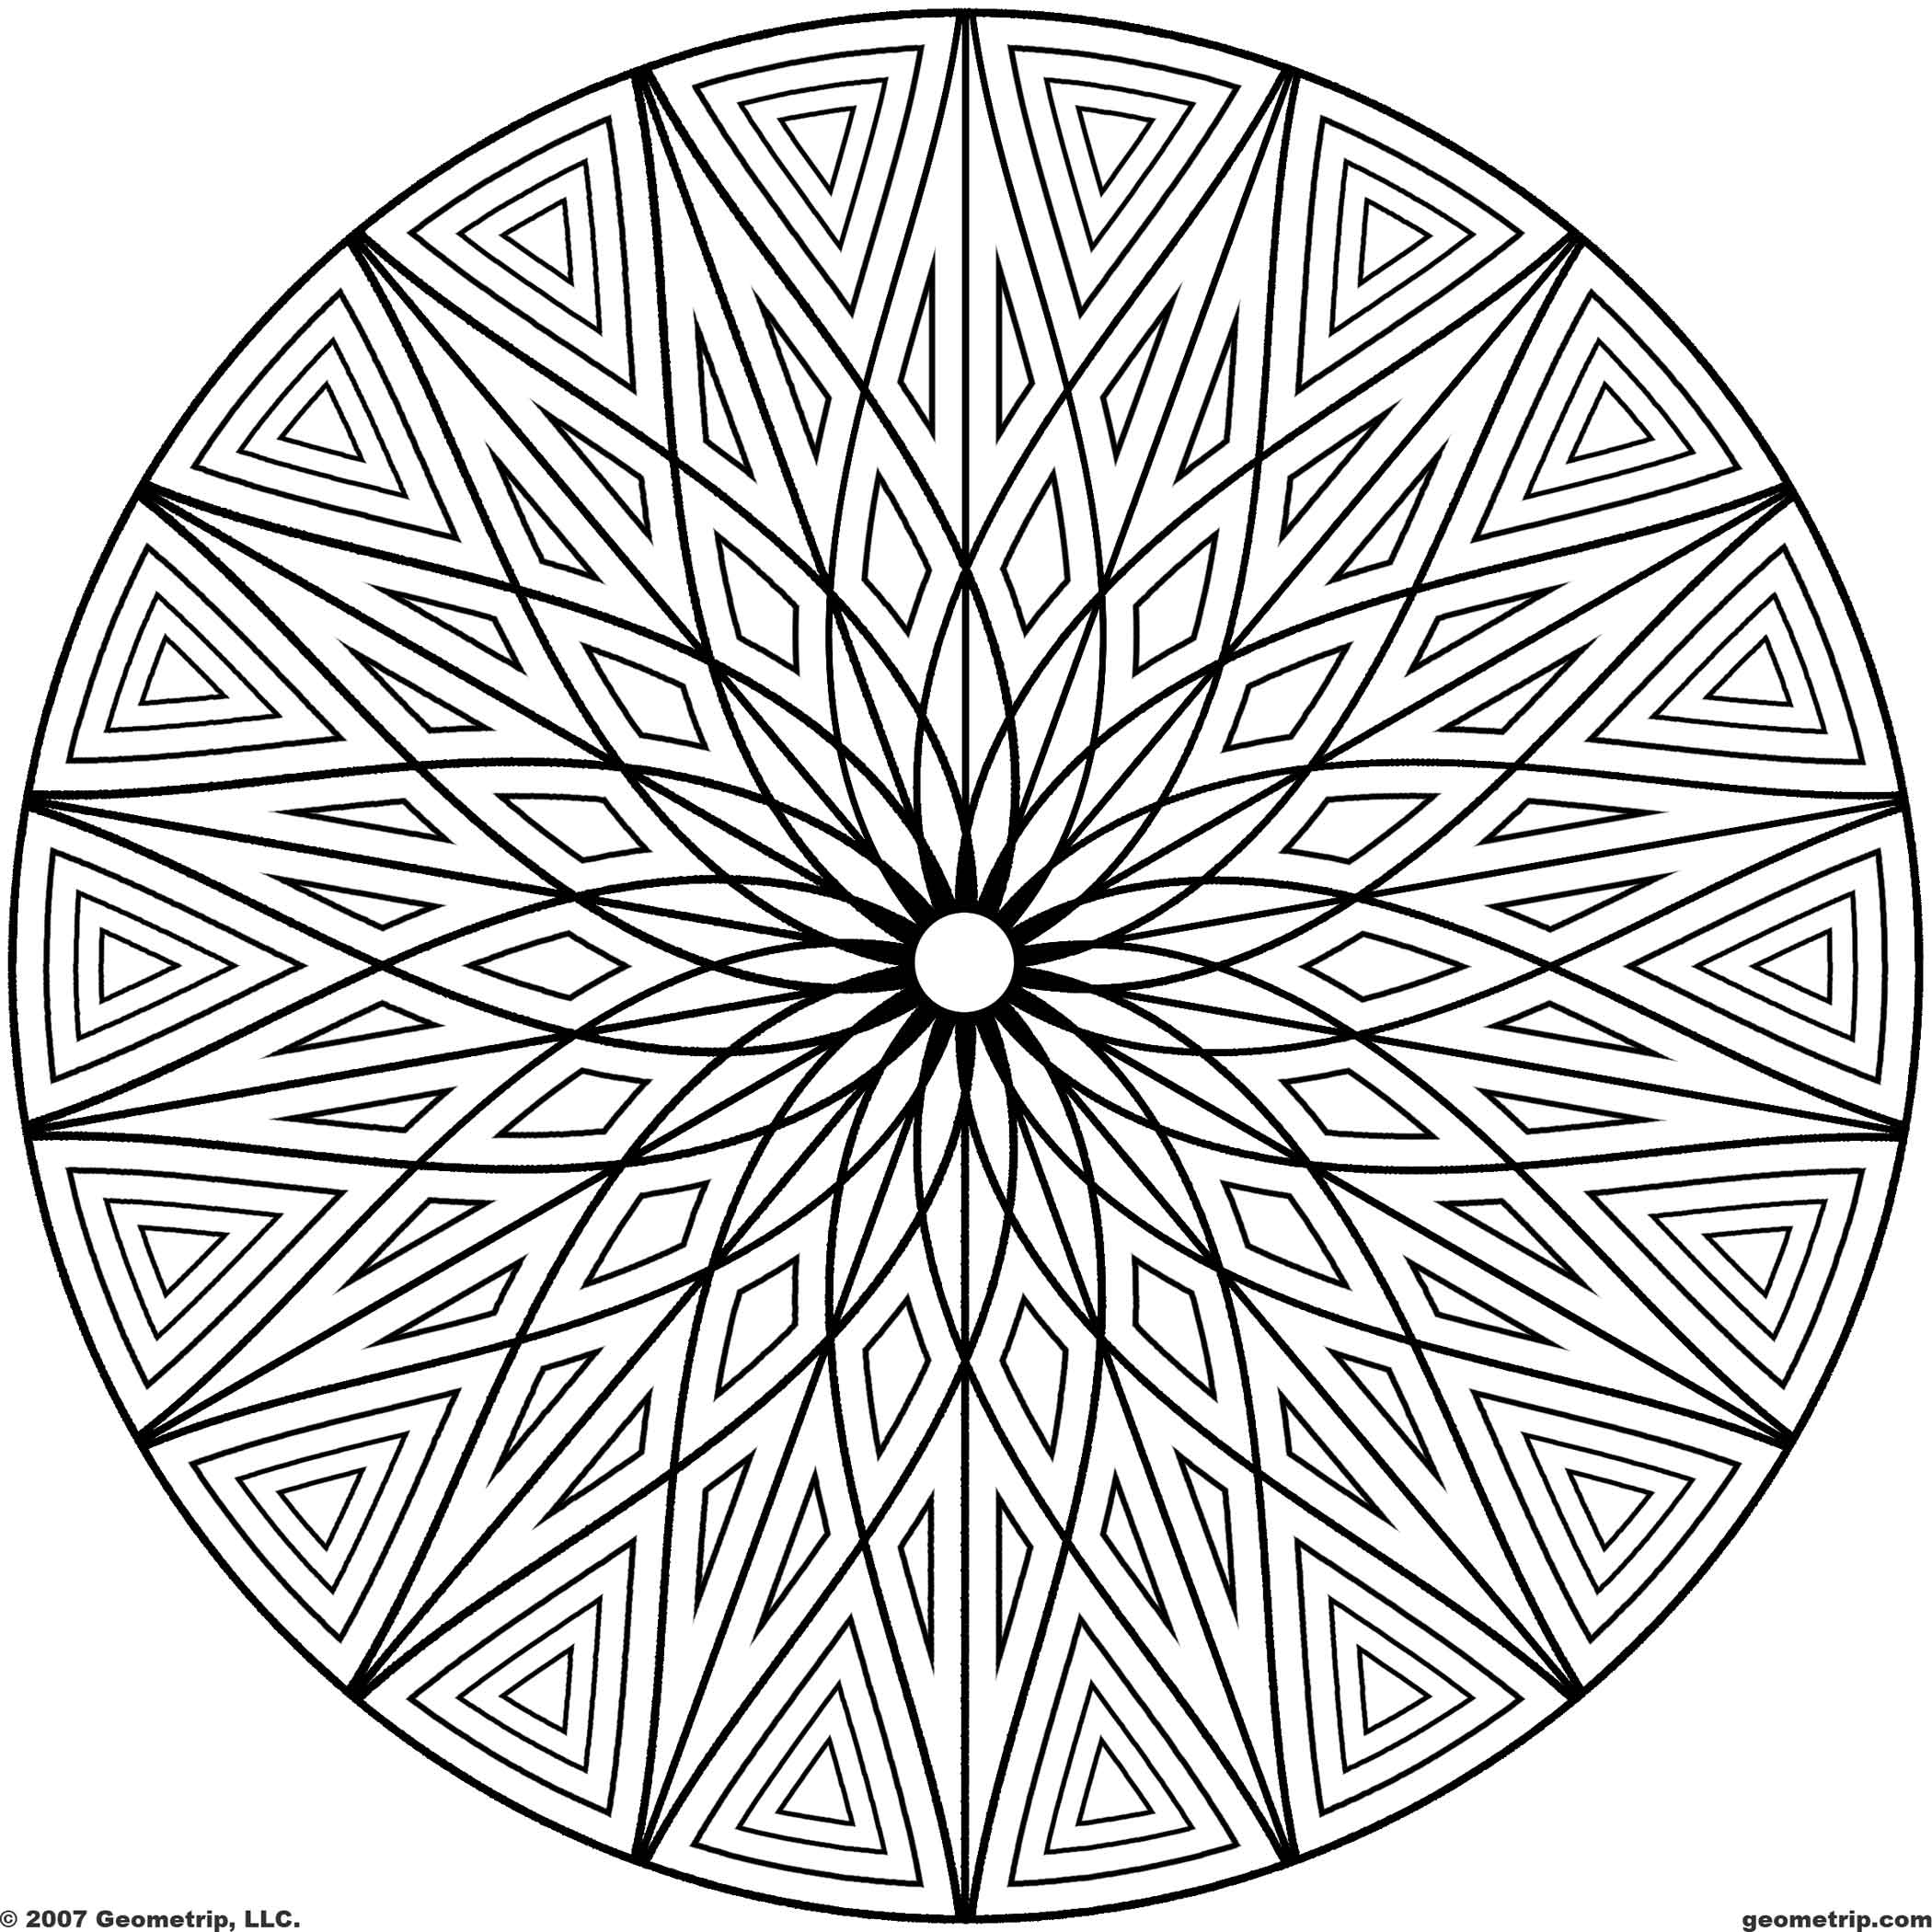 coloring pattern pages floral pattern coloring page free printable coloring pages pattern pages coloring